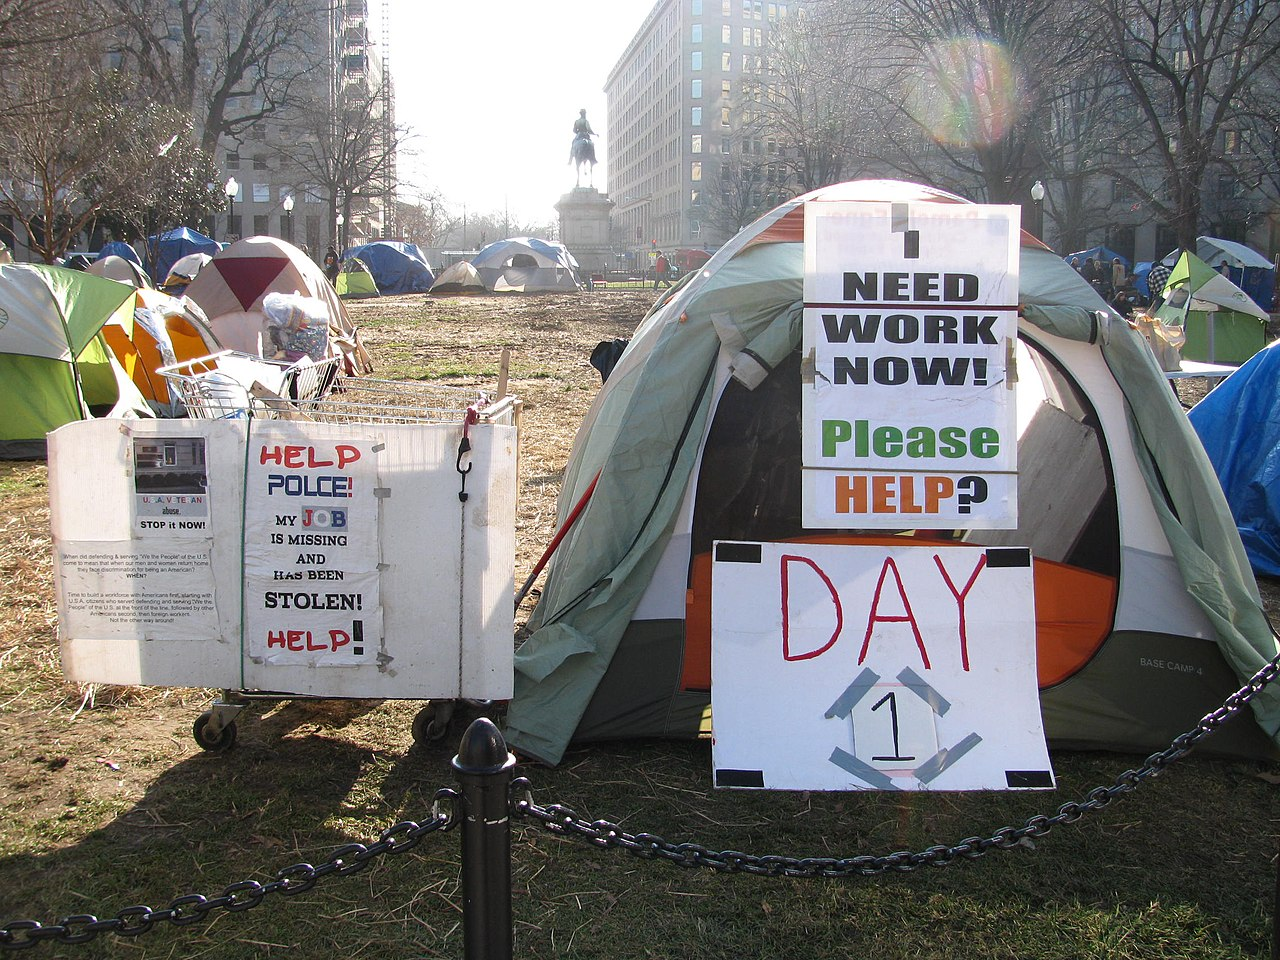 File:Occupy-need-work-now.JPG - Wikimedia Commons